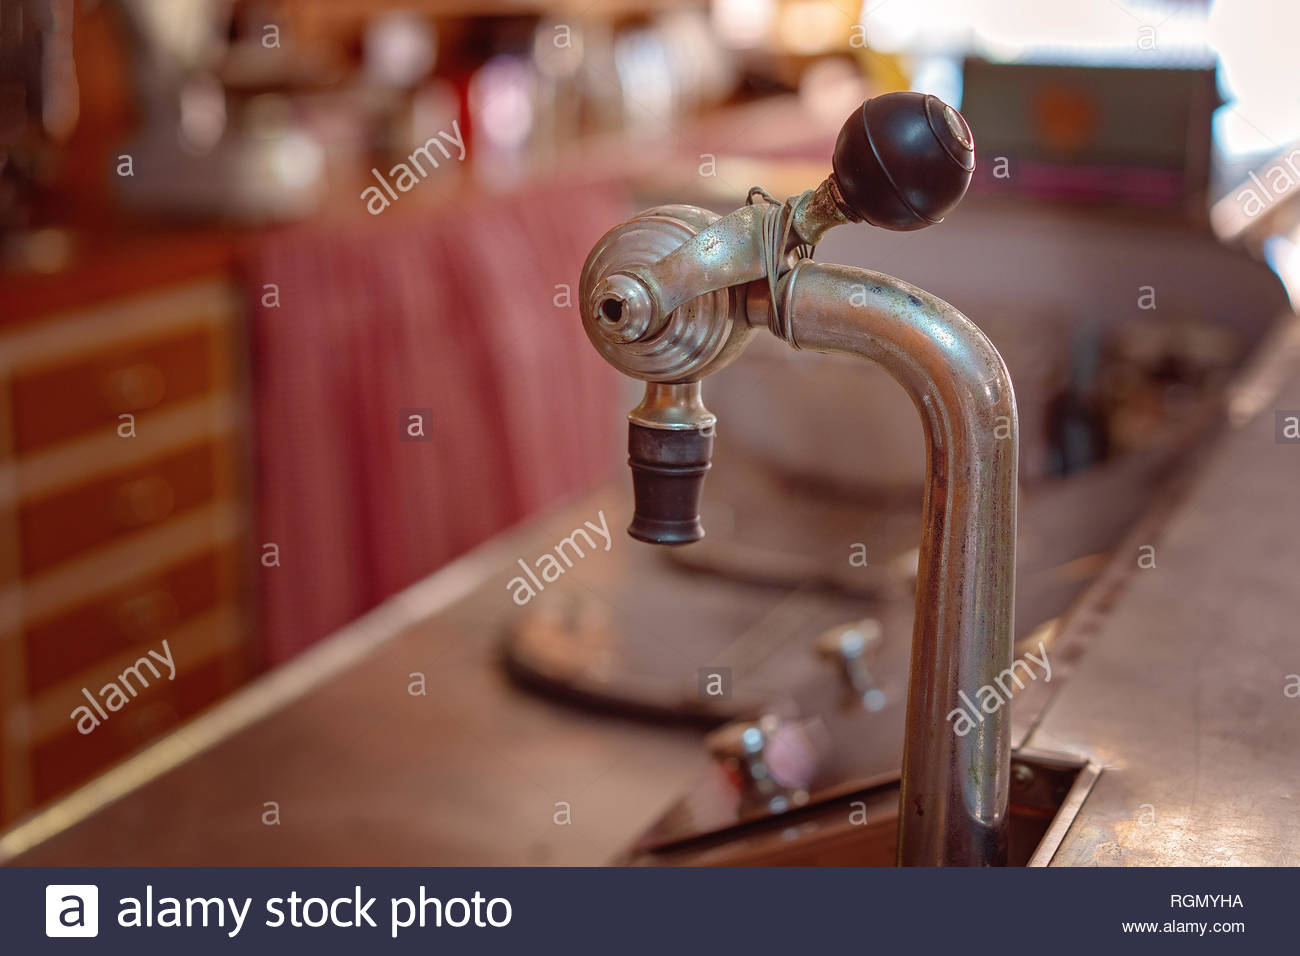 Old fashioned soda fountain on the counter of a retro cafe - Stock Image